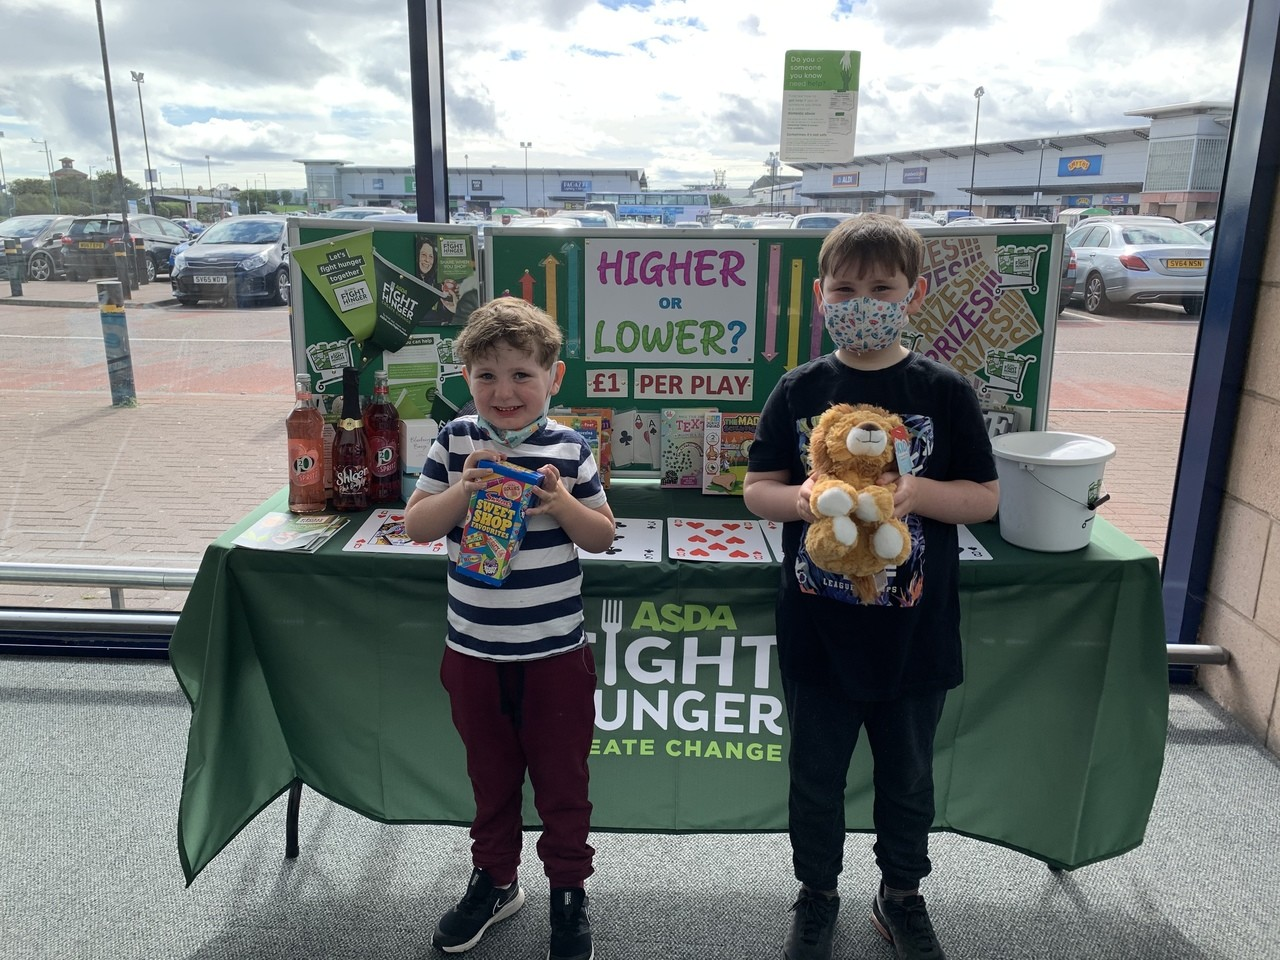 Angus and Hamish play their cards right and raise money for Fight Hunger | Asda Aberdeen Beach